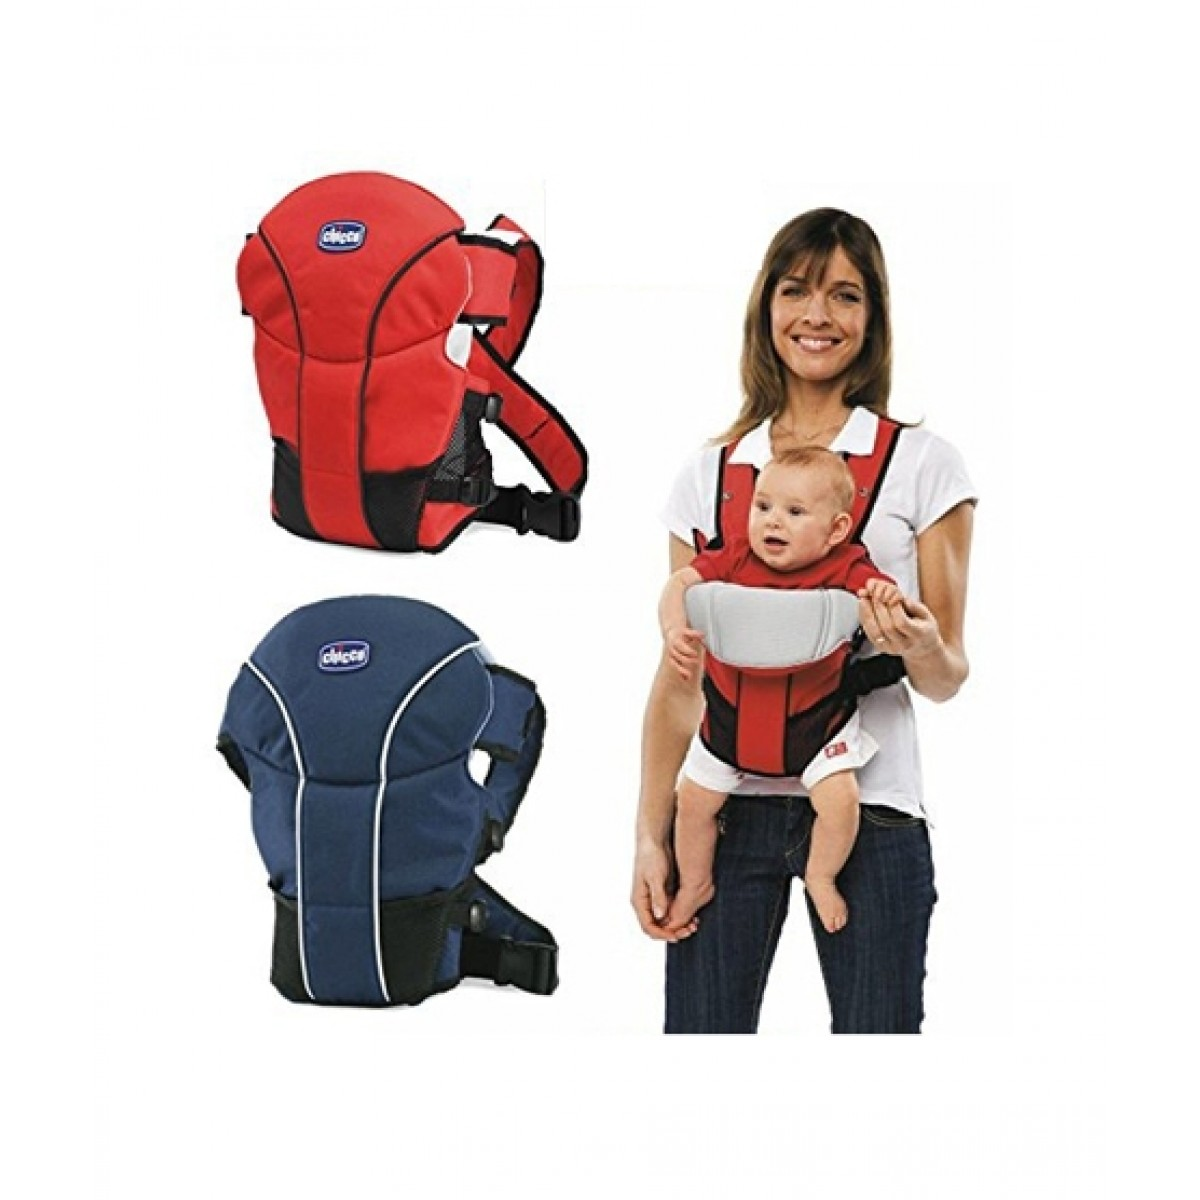 TheMrMart Chicco Baby Carrier